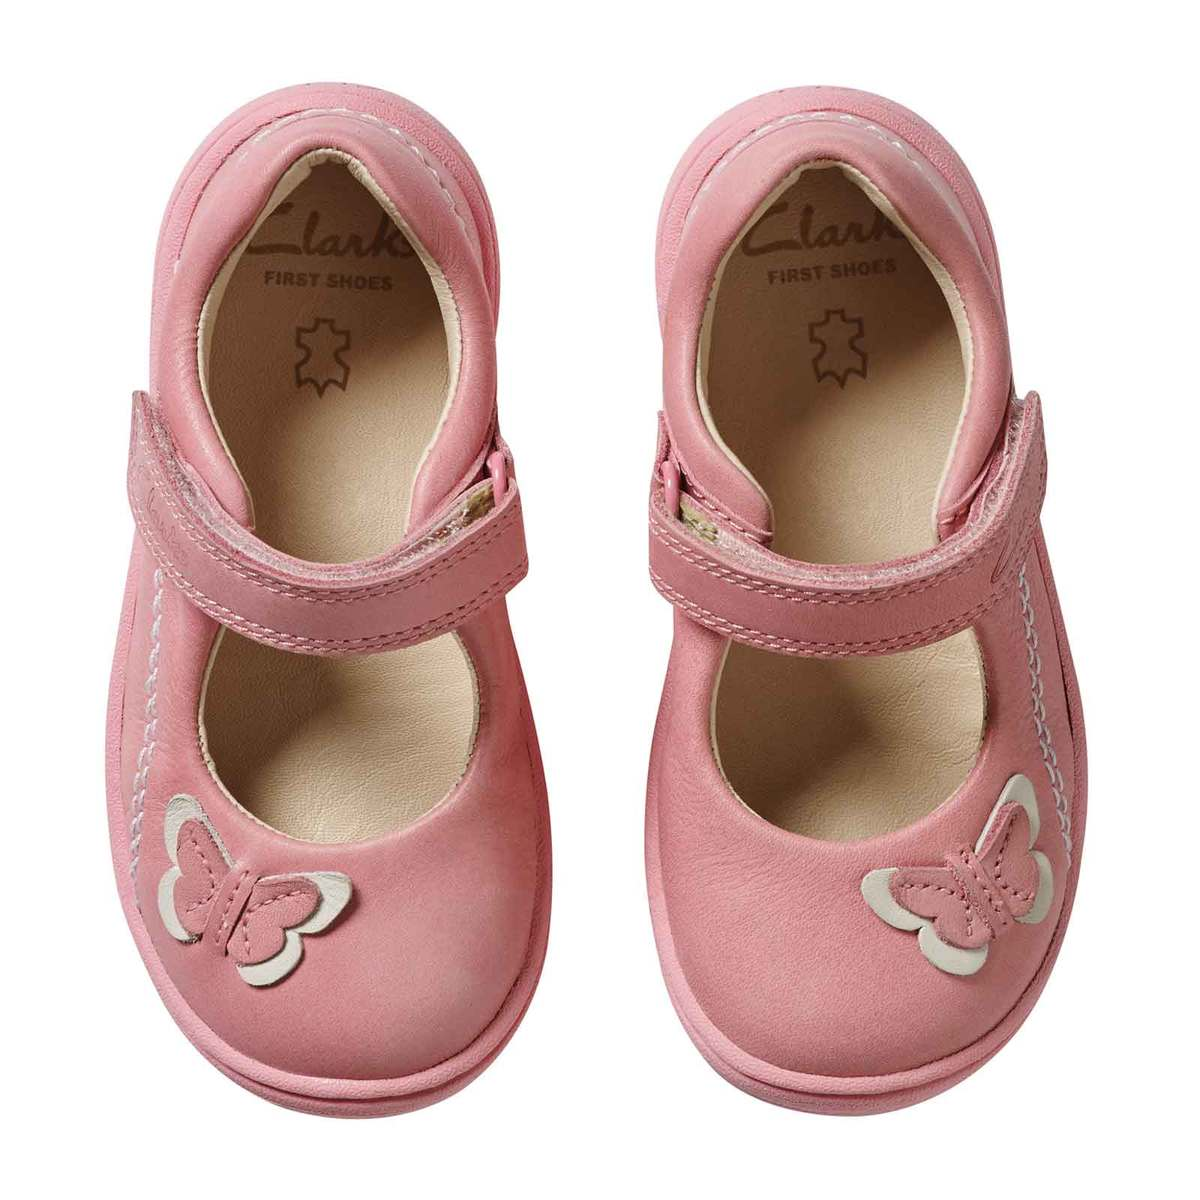 clarks first shoes girl